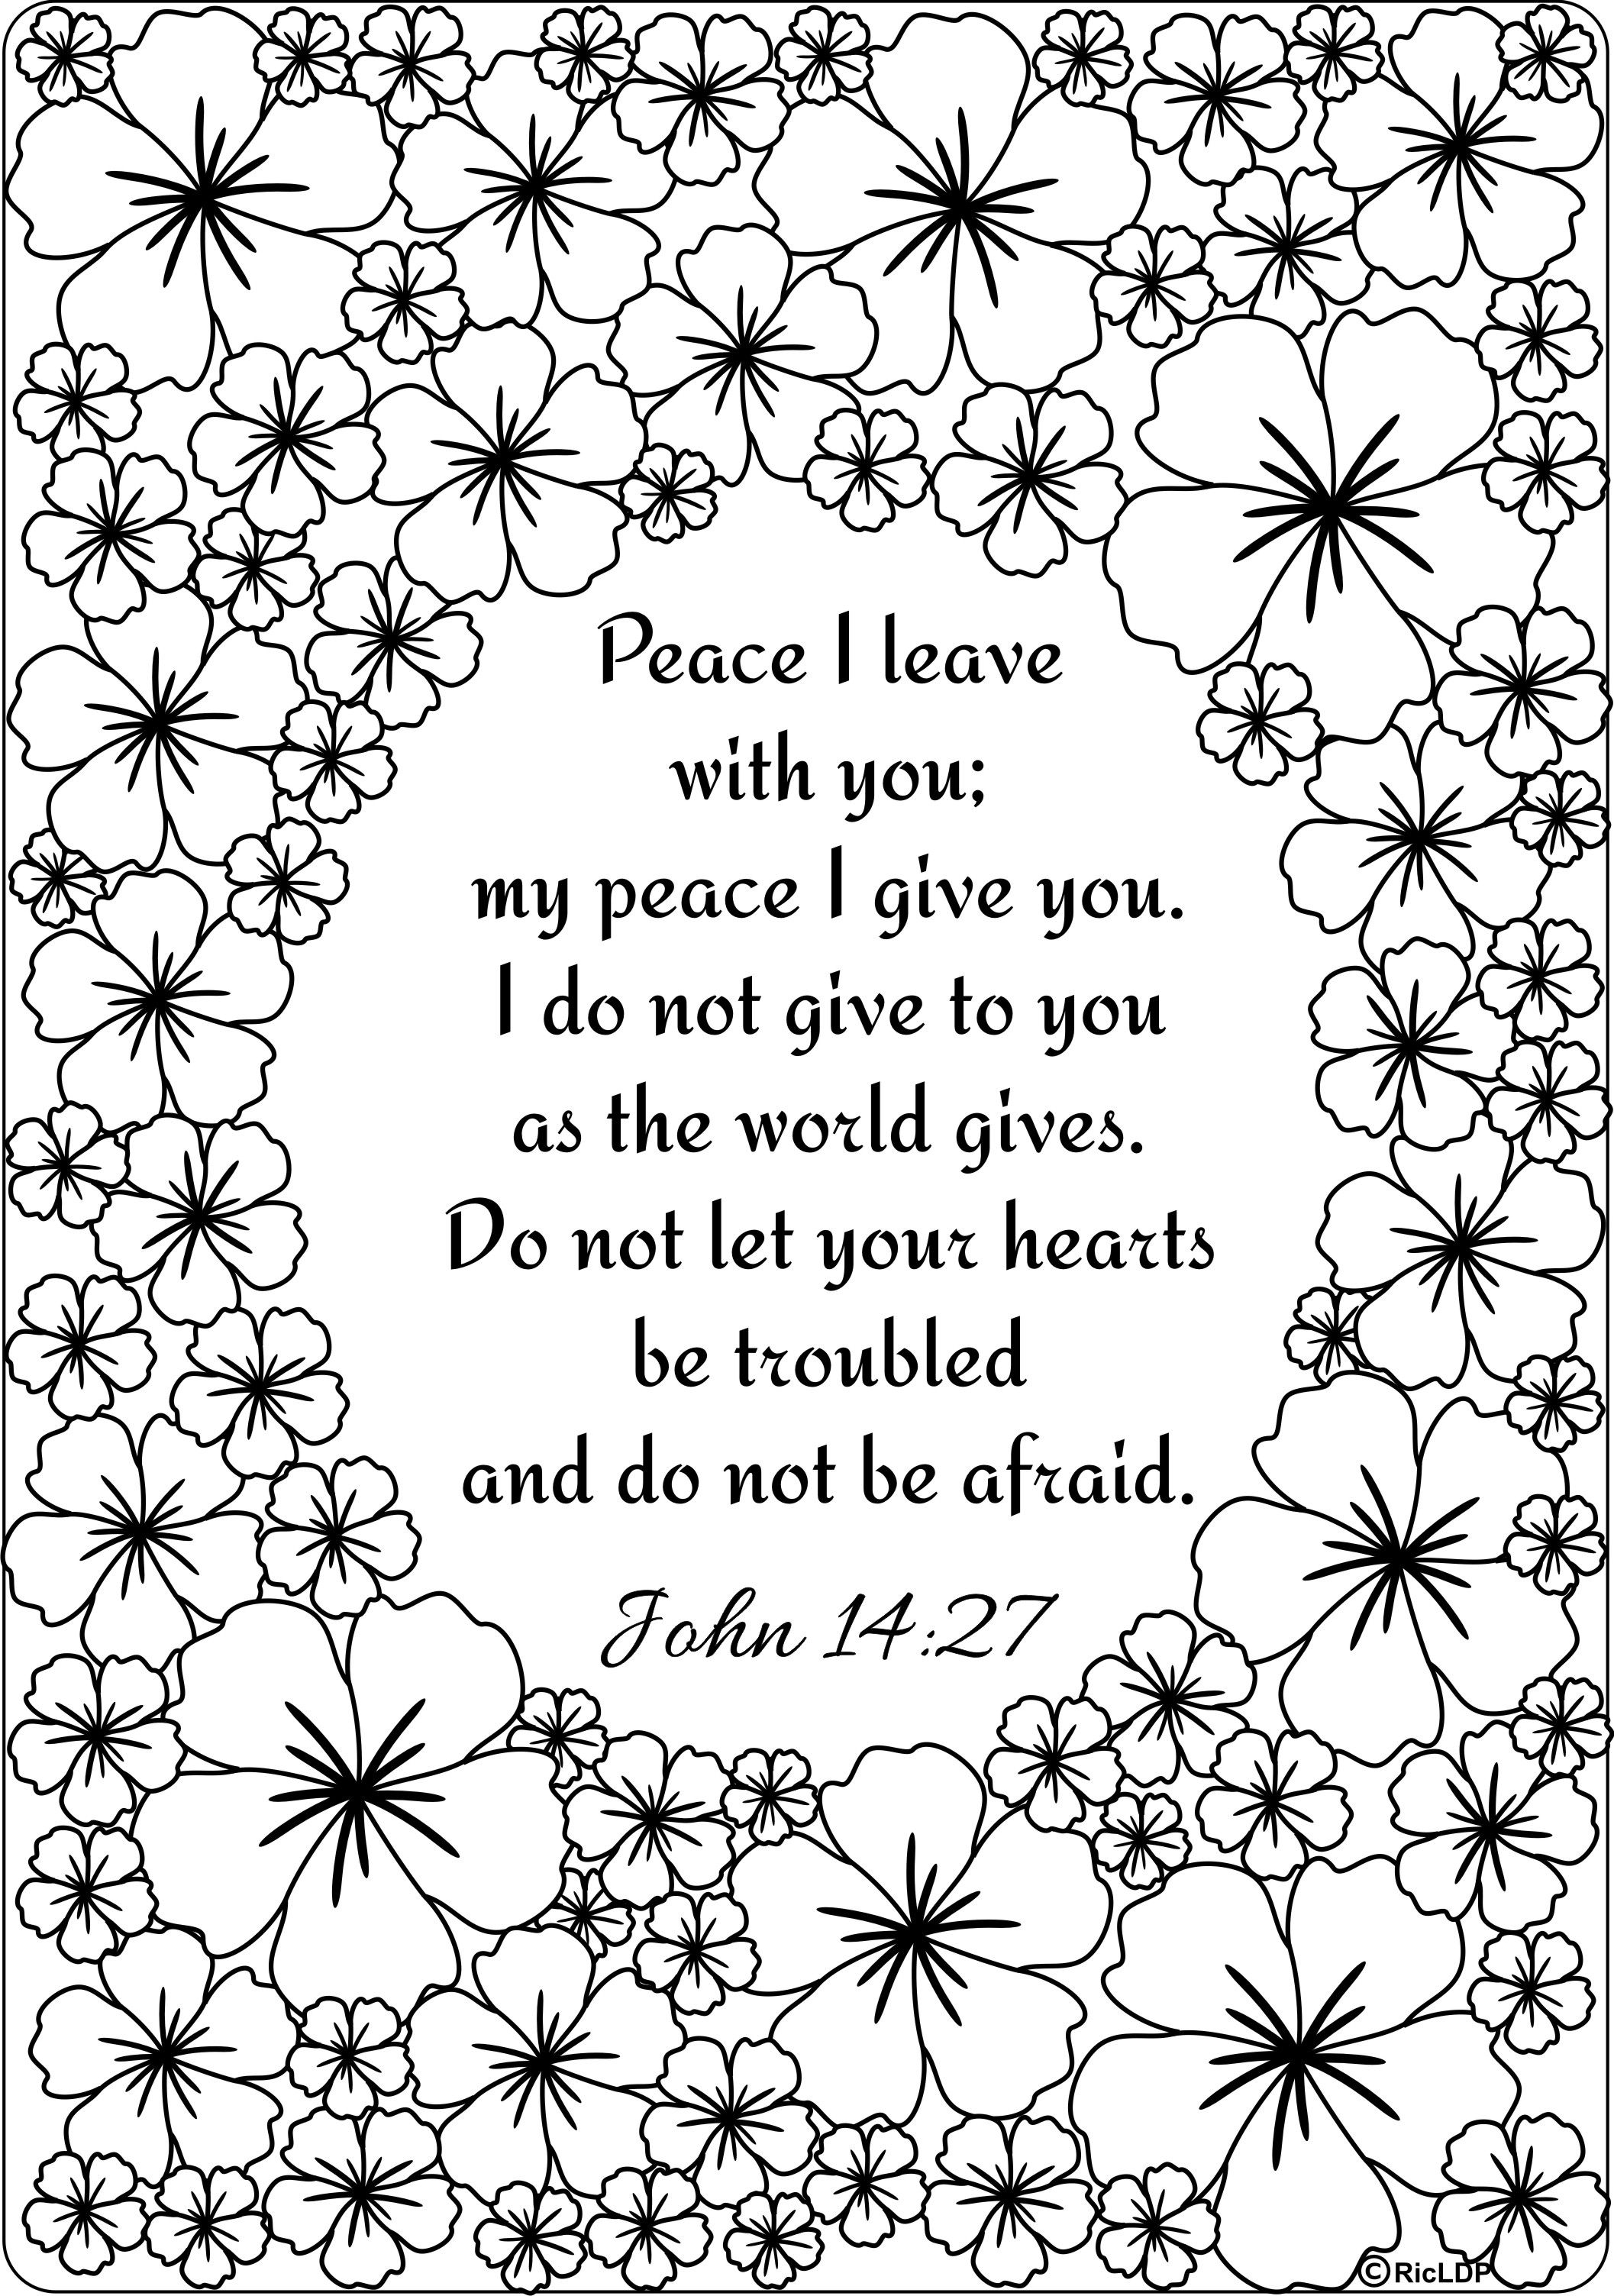 15 Bible Verses Coloring Pages - Free Printable Bible Coloring Pages With Scriptures